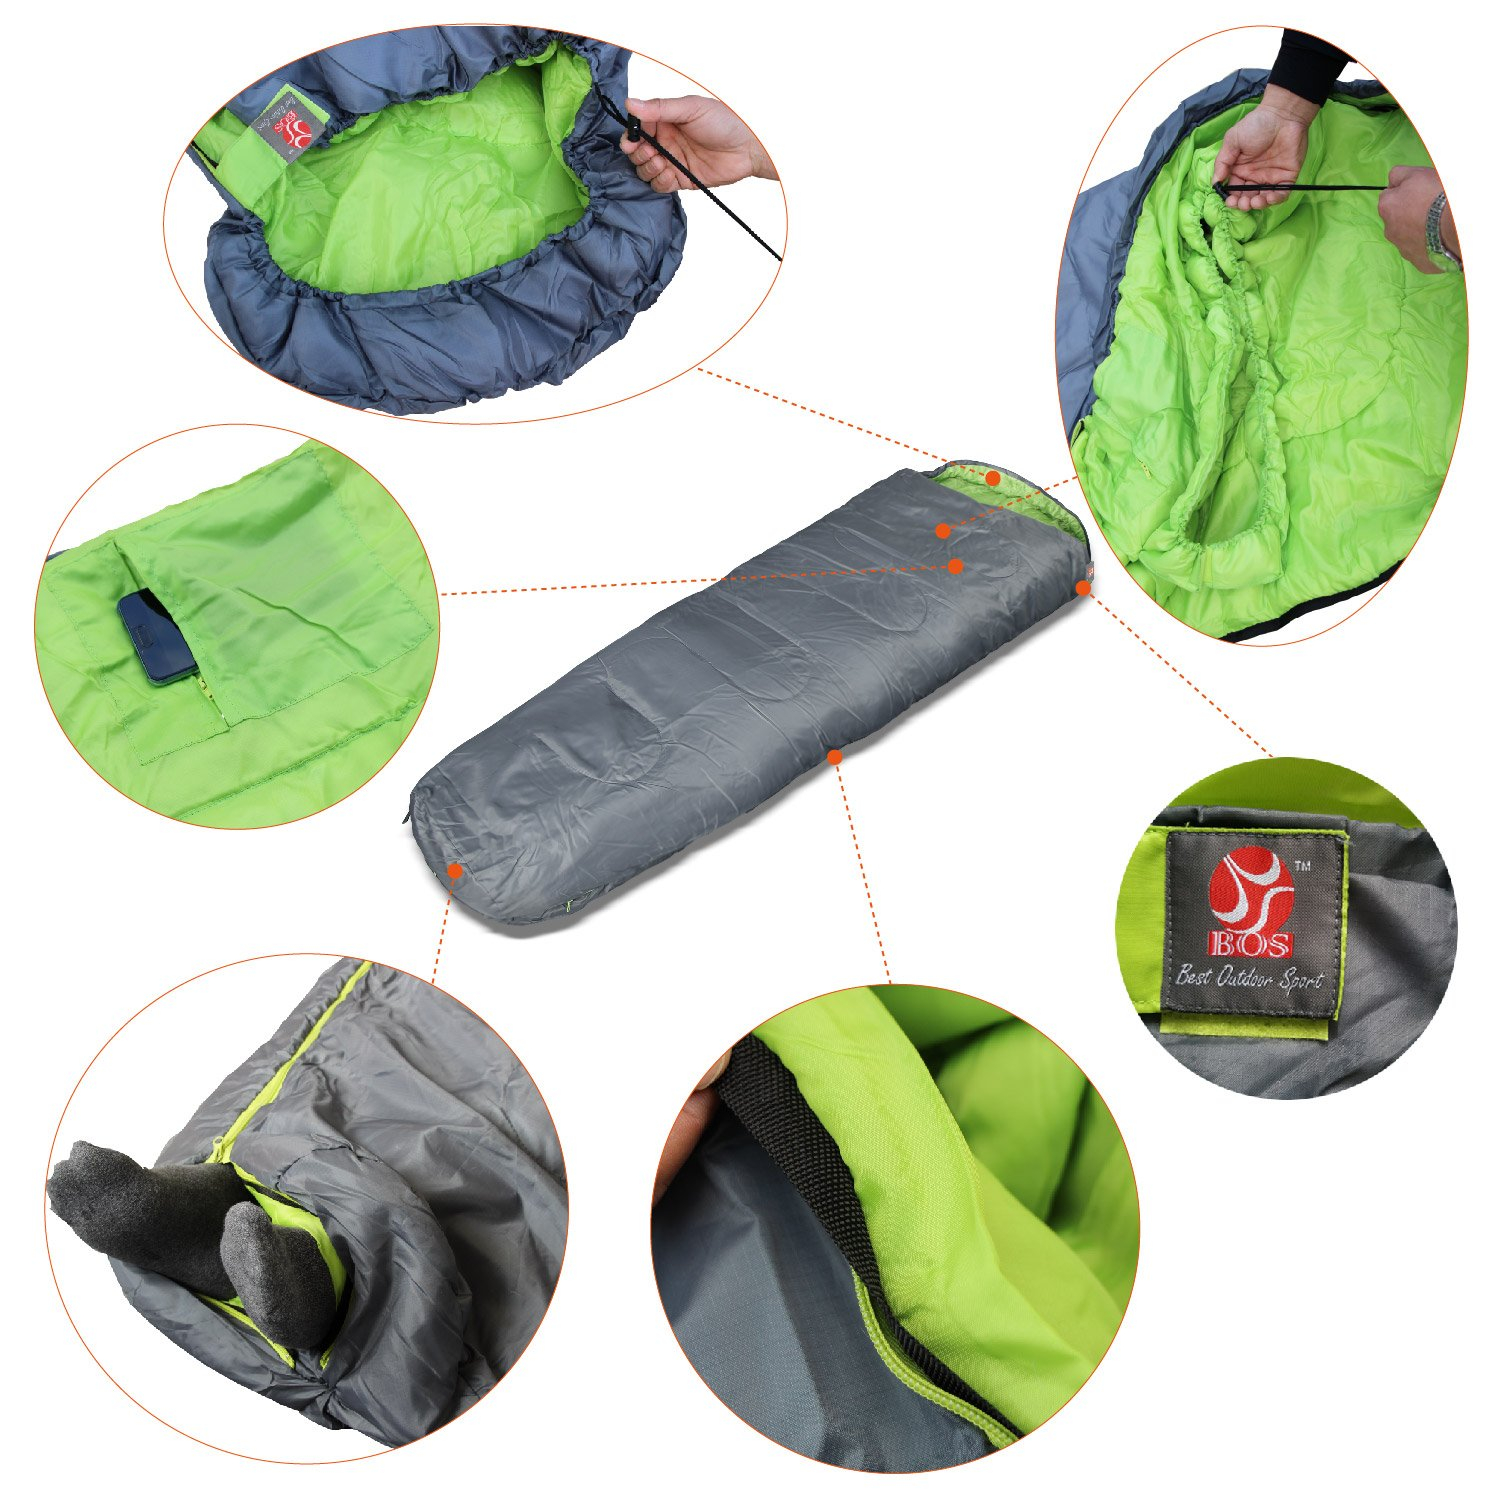 BOS Portable Mummy Sleeping Bag- Ultralight Waterproof Camping Sleeping Bag with Compression Sack for 4 Season Traveling and Outdoor Activities- Large Sleeping Bag for Adults up 7 2